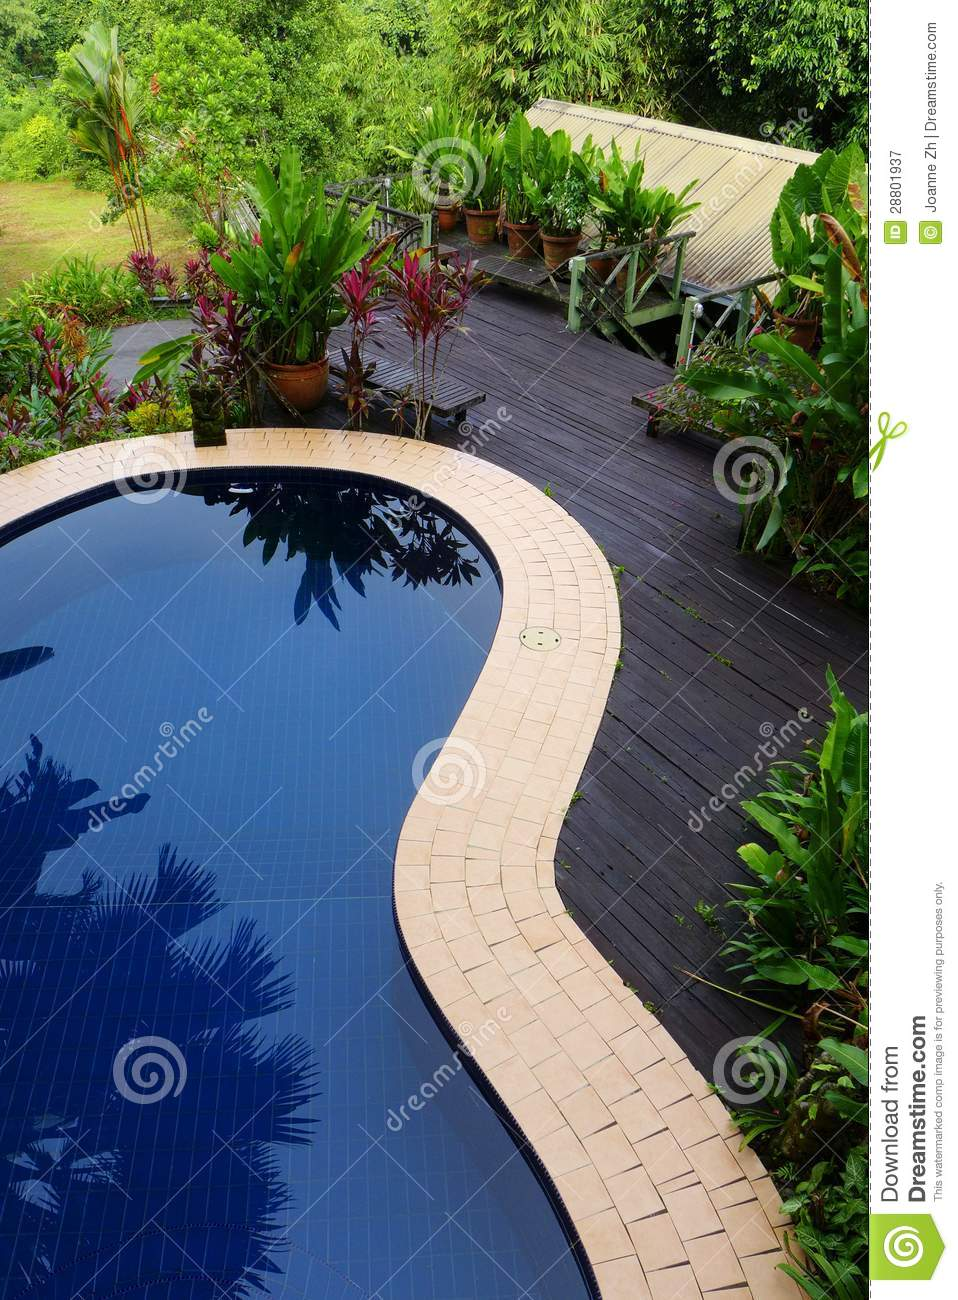 Royalty Free Stock Photography: Wood patio & pool layout with ...